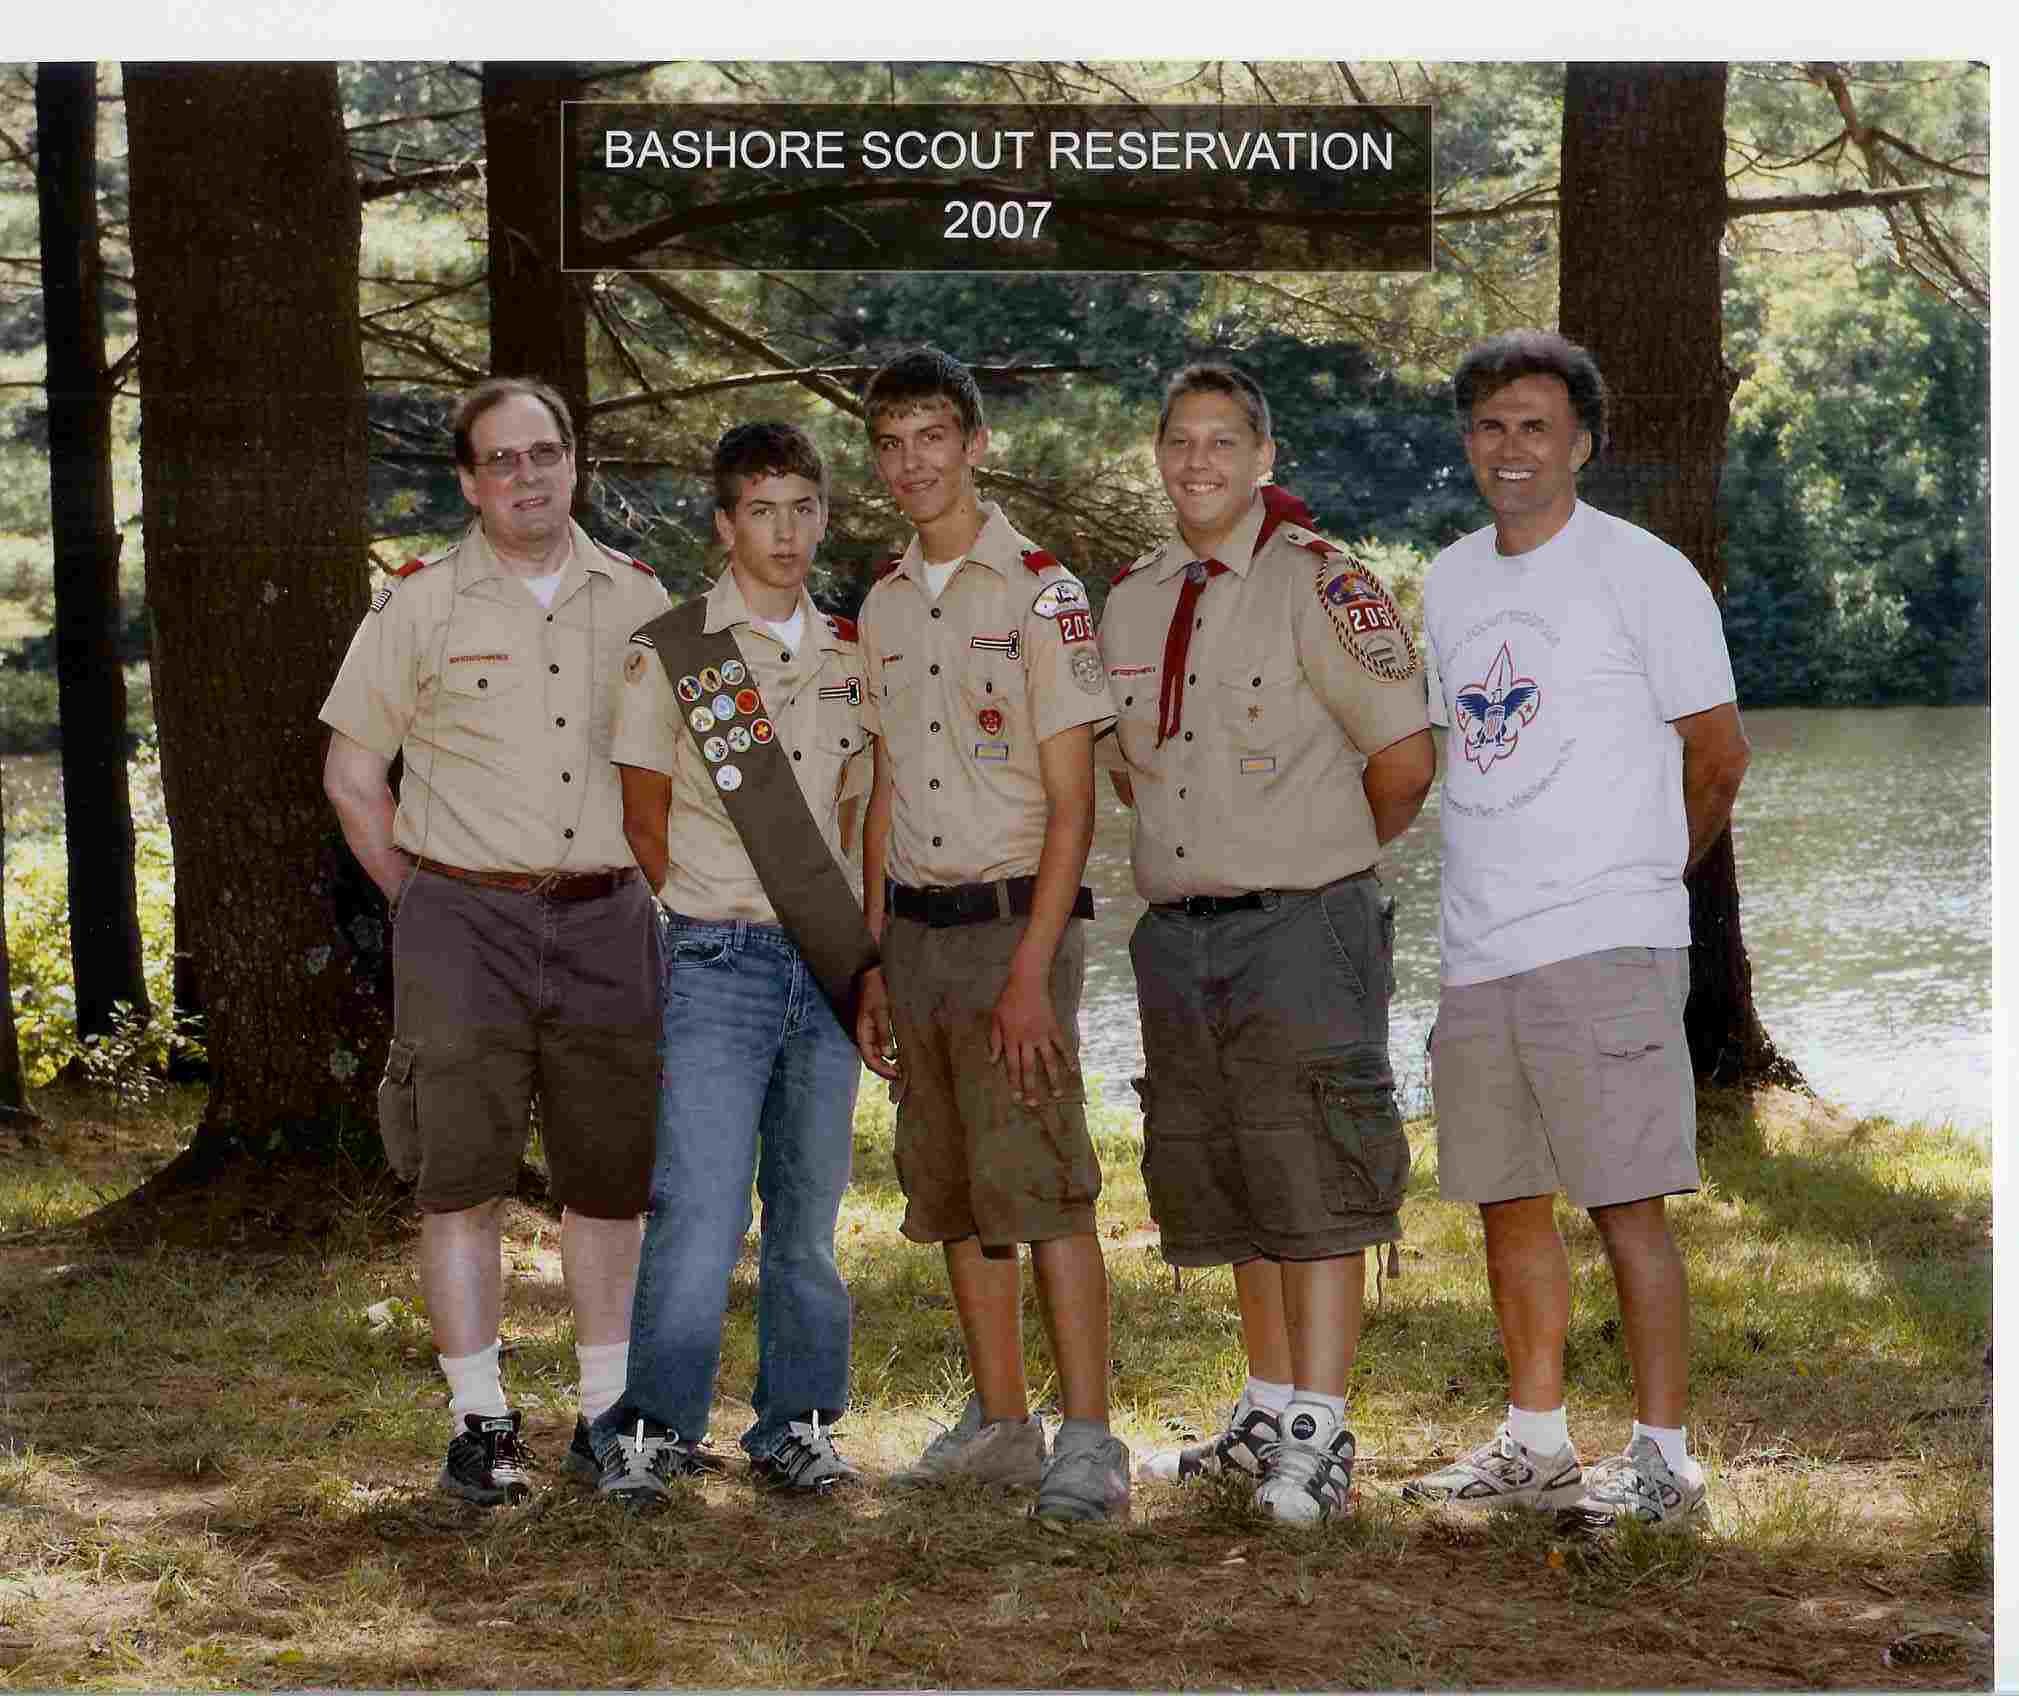 Bashore_2007summercamp.jpg